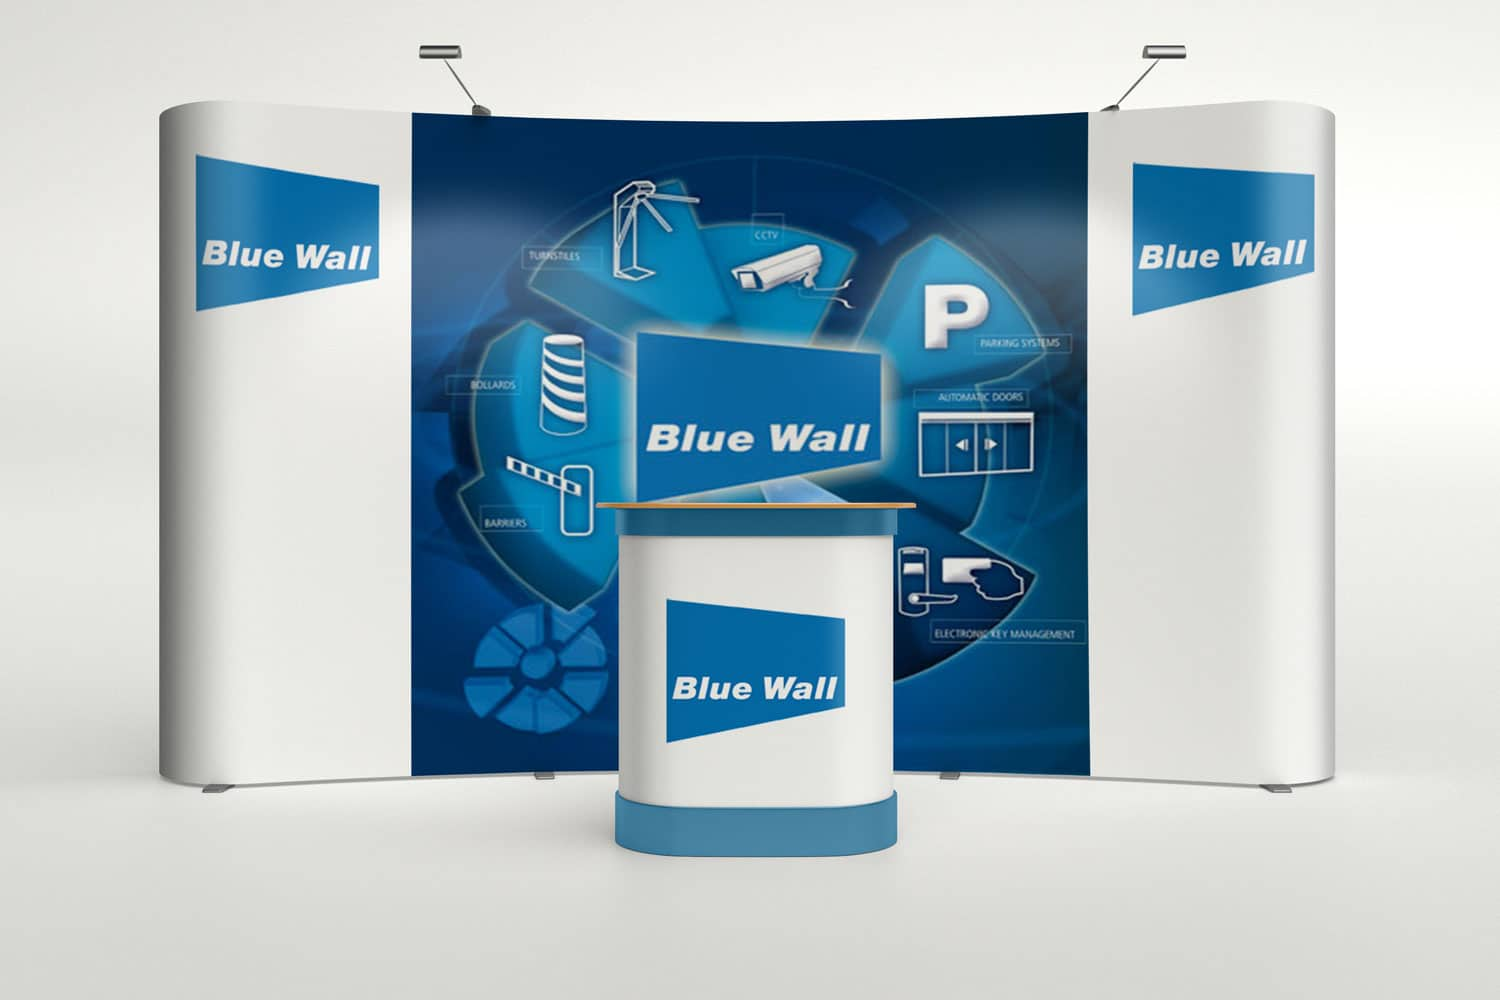 Bluewall-Display-Stand-2